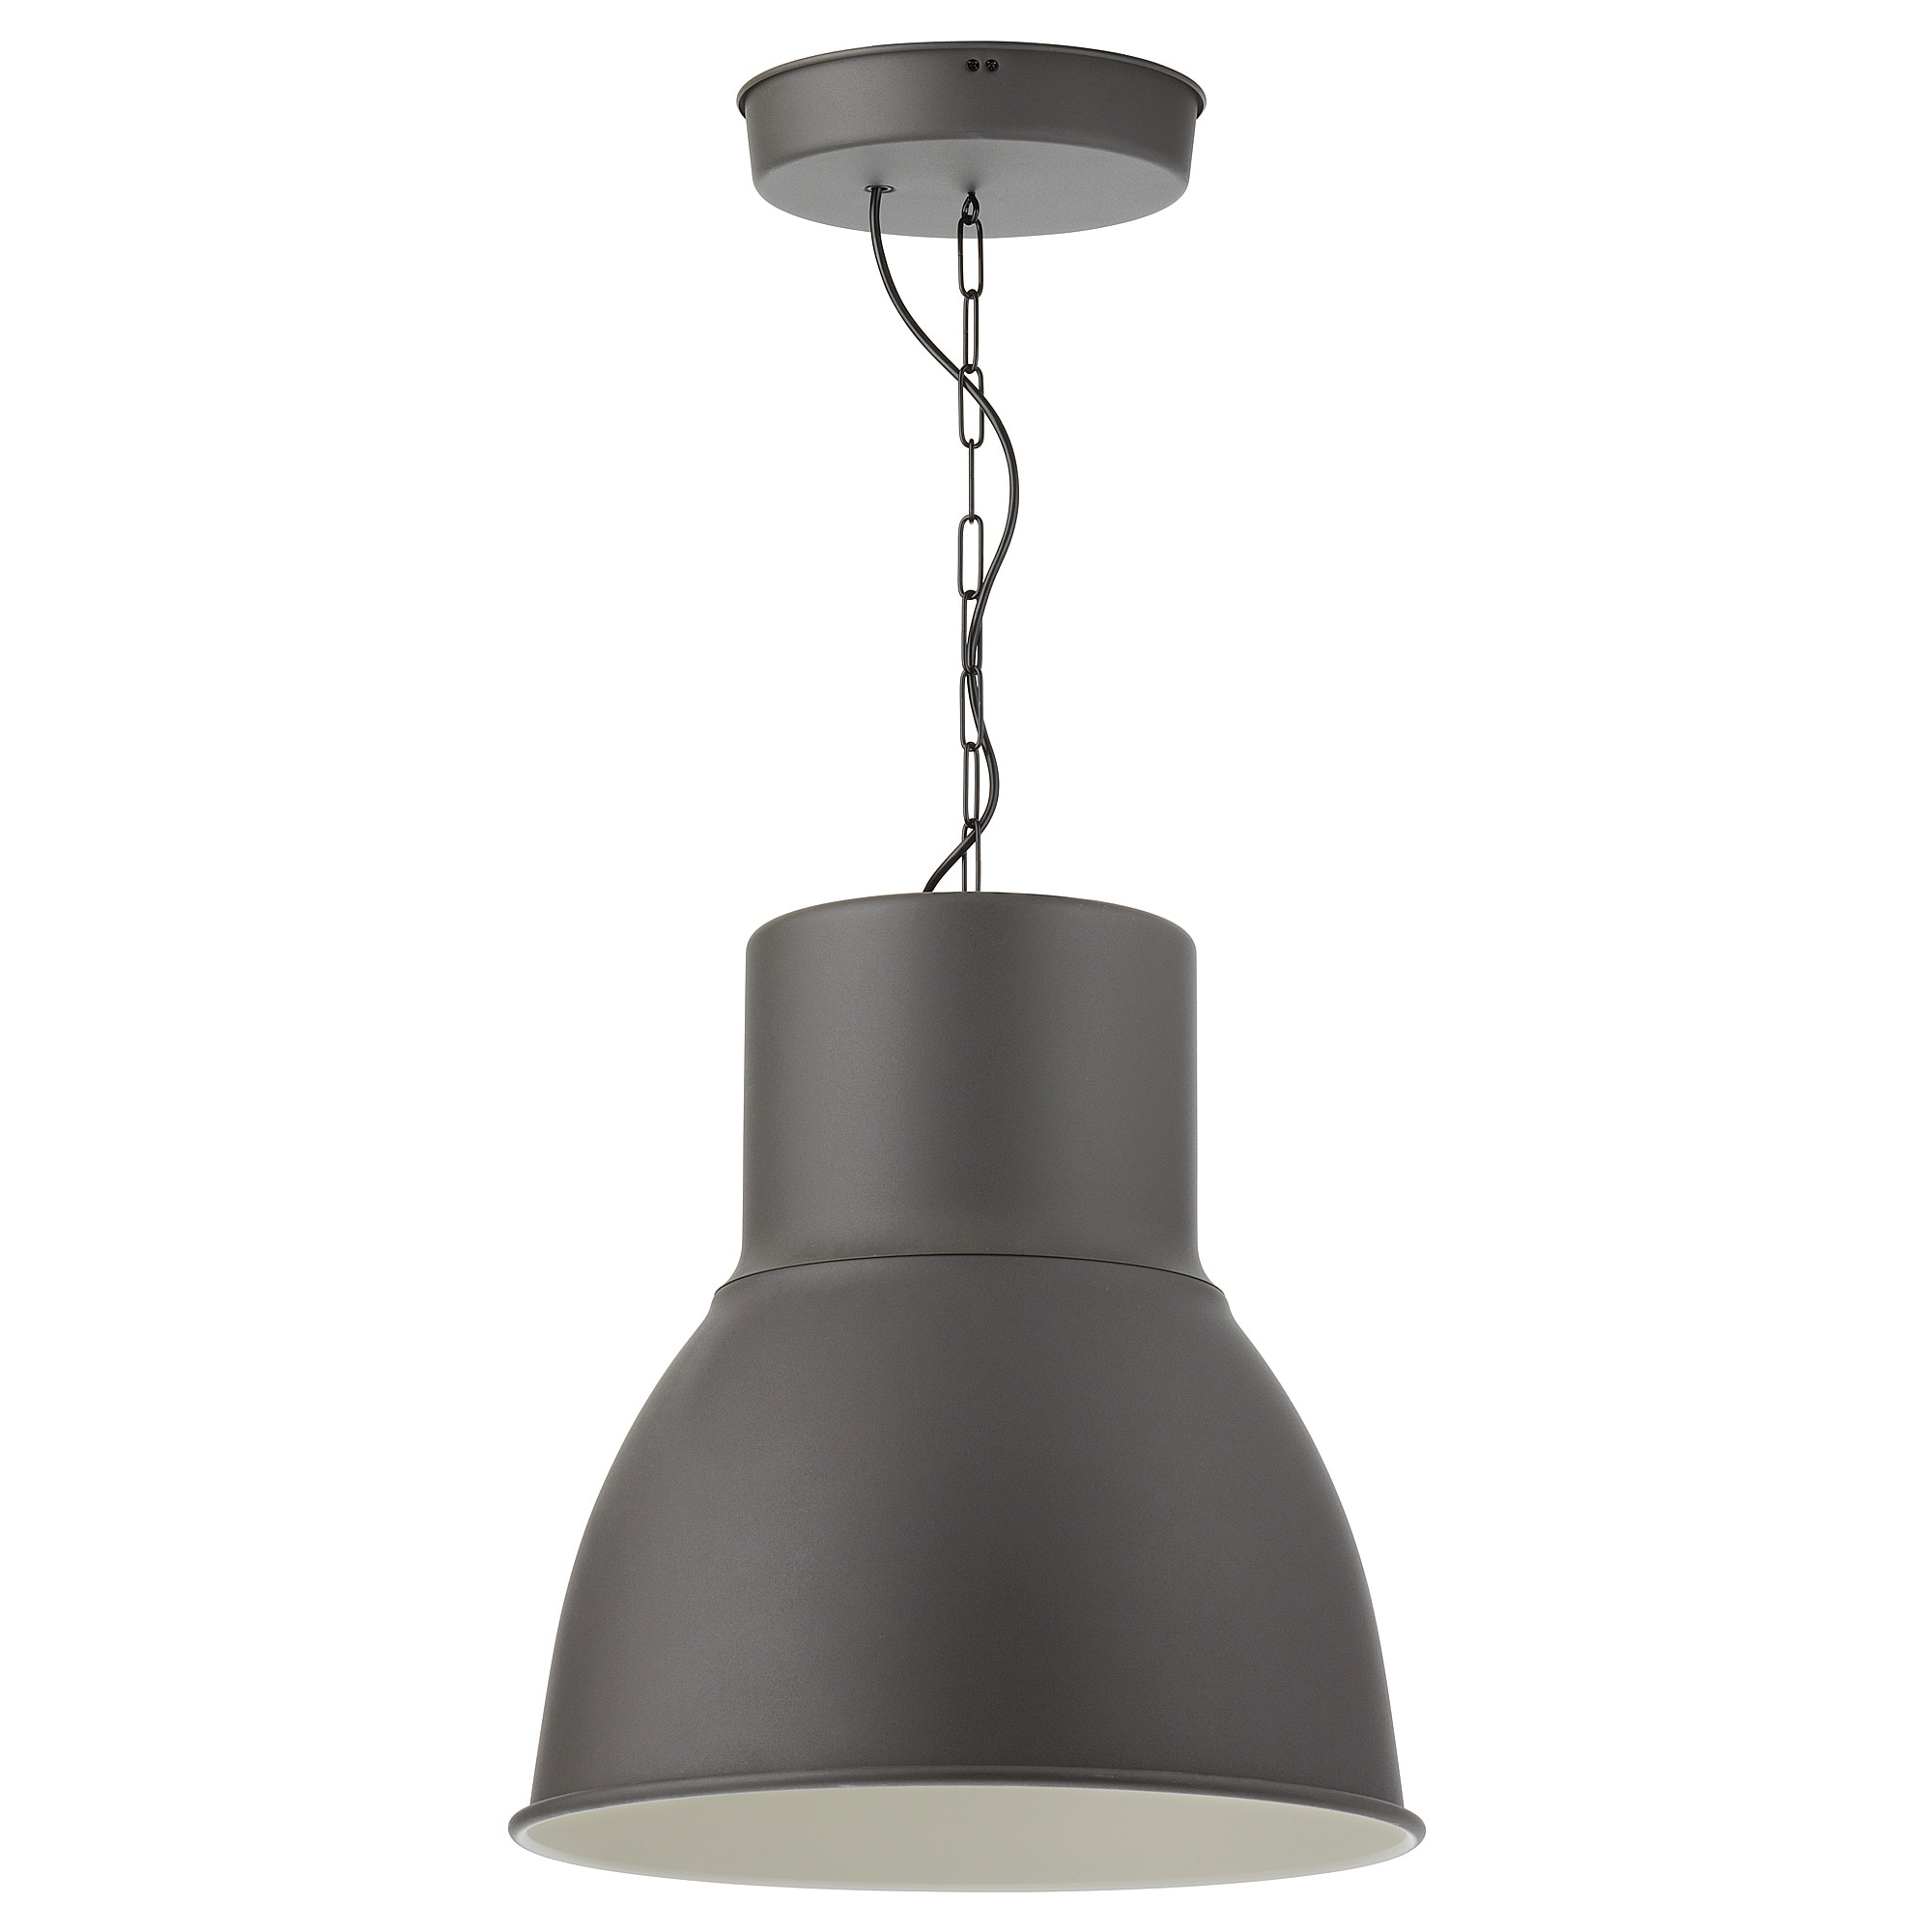 Hektar pendant lamp dark gray 19 47 cm